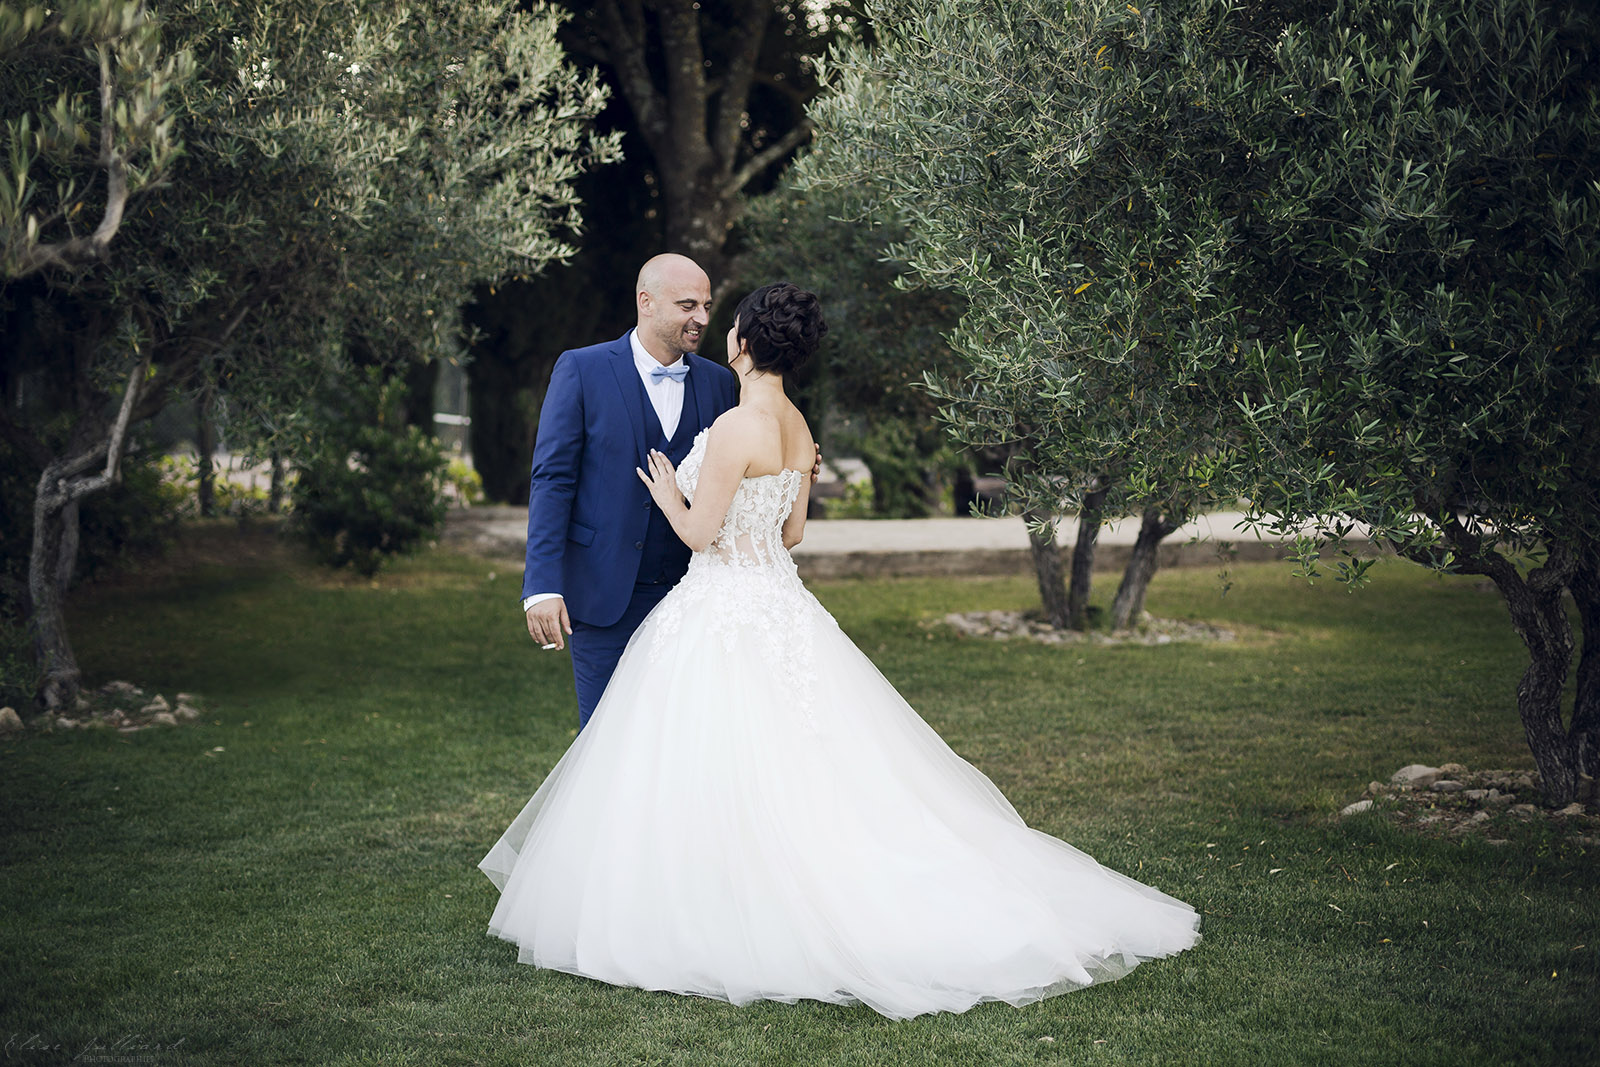 mariage-nimes-provence-alpes-cote-azue-languedoc-occitanie-domaine-la-baraque-de-serignac-alliances-olivier-wedding-reportage-seance-photo-couple-elise-julliard-photographe-3